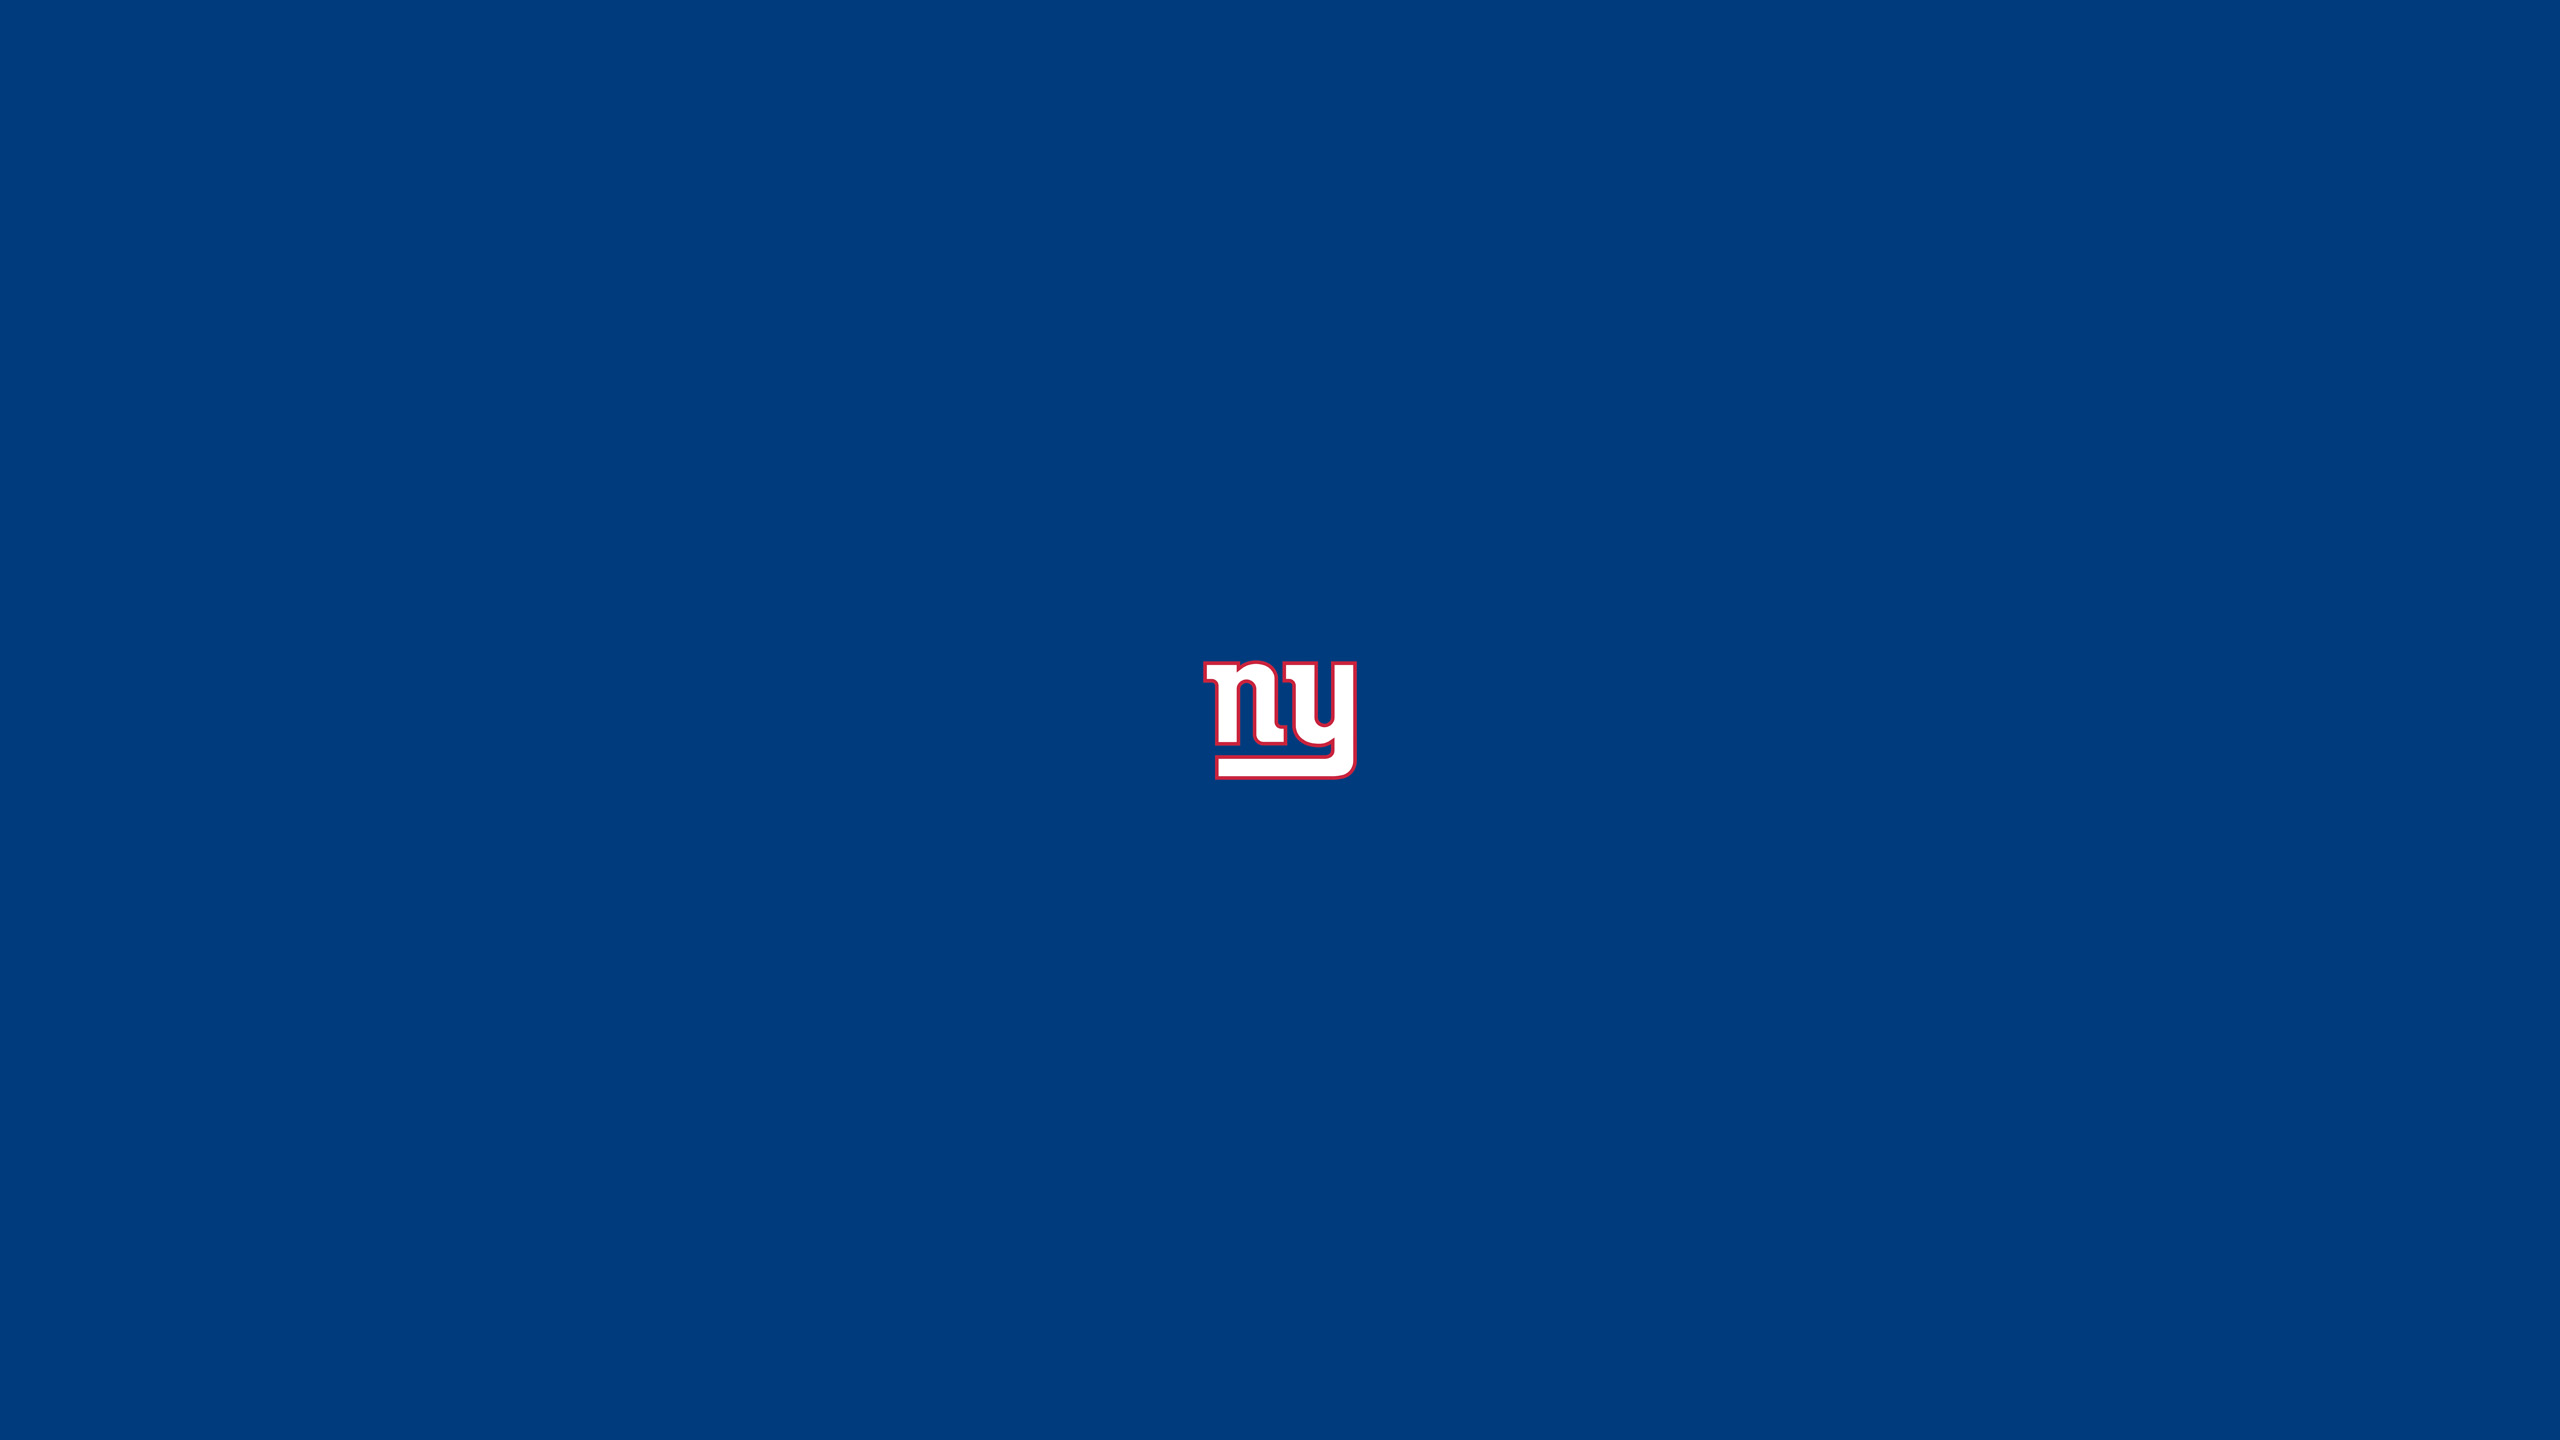 11 Hd New York Giants Wallpapers